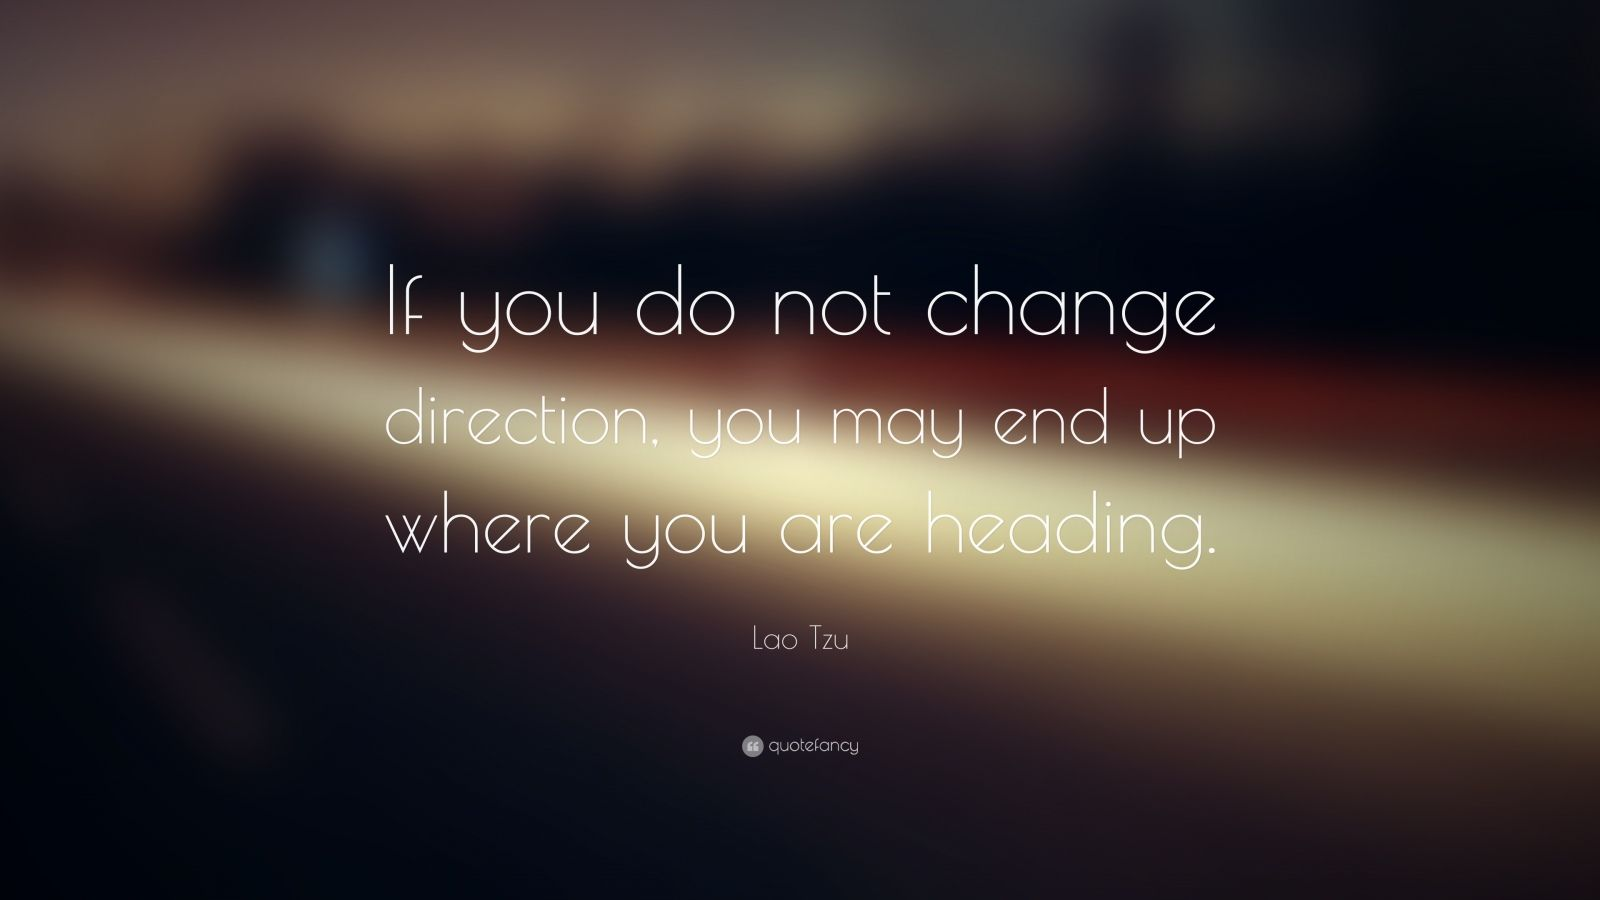 """Lao Tzu Quote: """"If you do not change direction, you may end up where you are heading."""""""